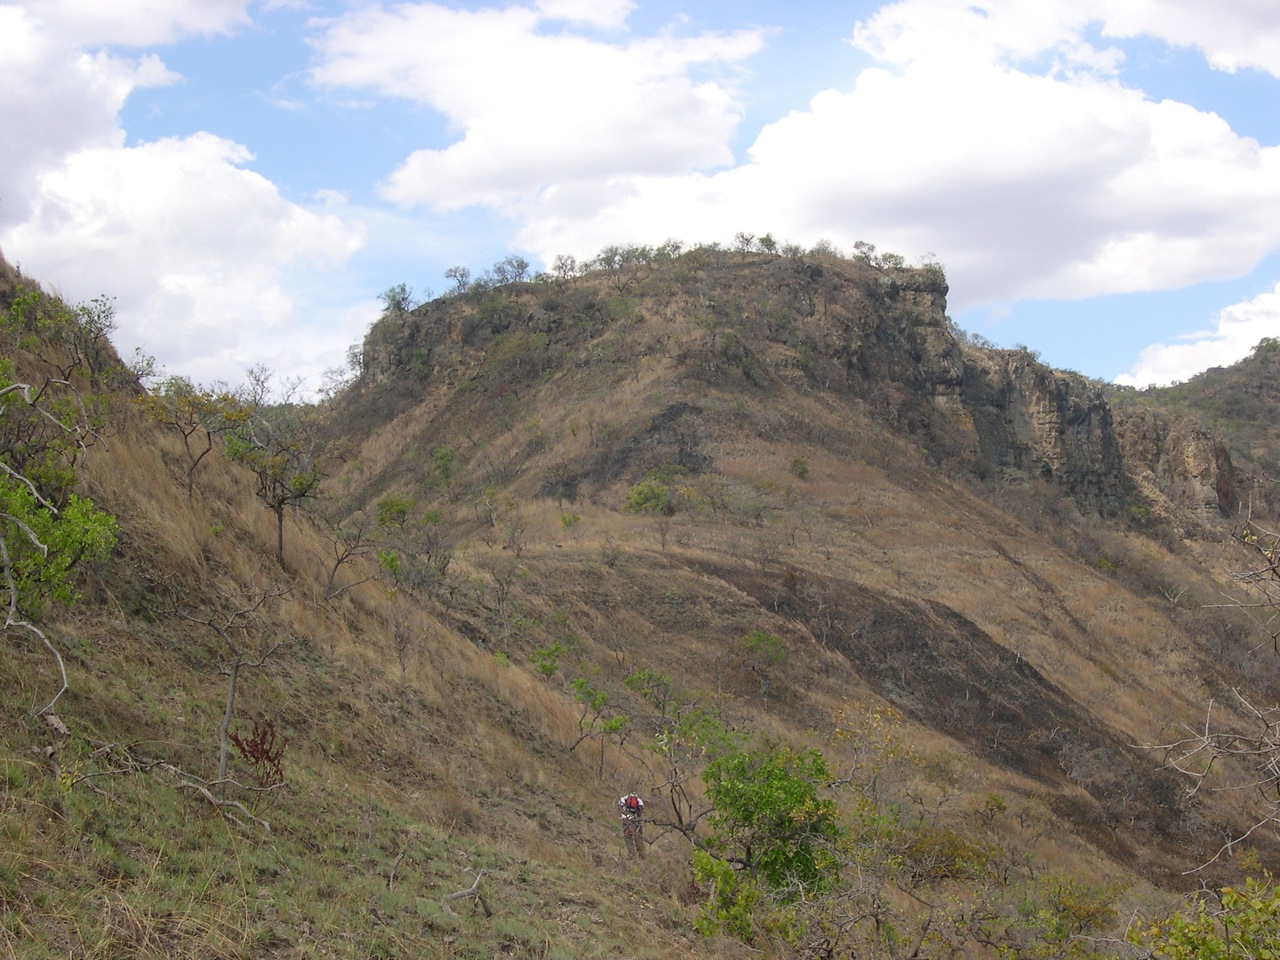 Robert Kityo prospecting for Early Miocene fossils at Napak I at Akism, Uganda. Site IX higher is on the slope above stratigraphically below aggolomerate capping the ridge.